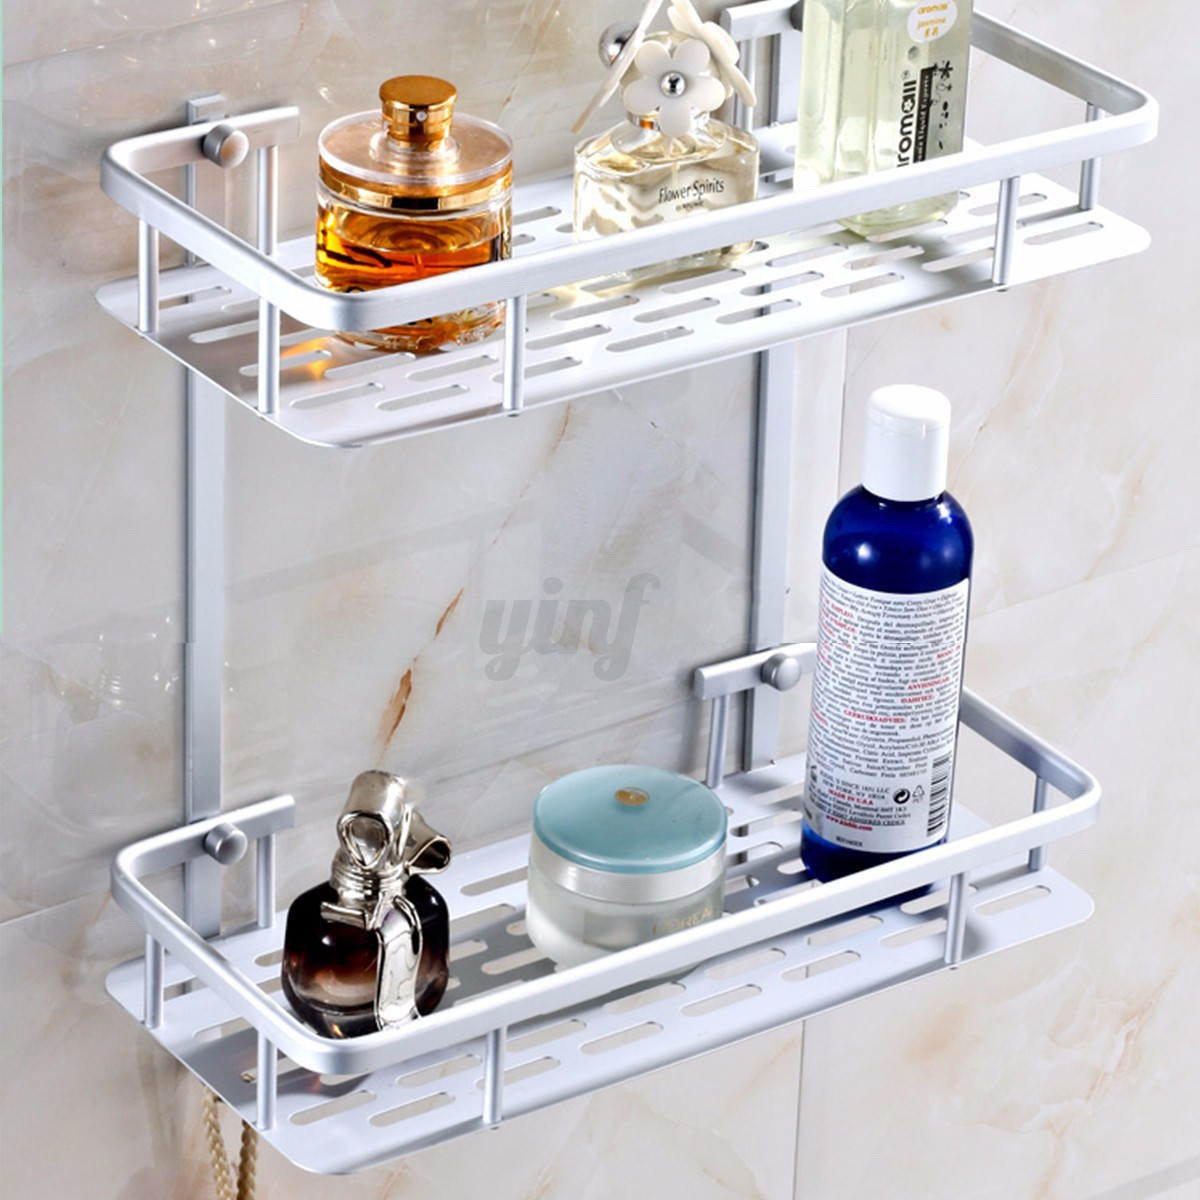 Alumimum 3 tier bathroom shower storage shelf caddy basket - Bathroom storage baskets shelves ...